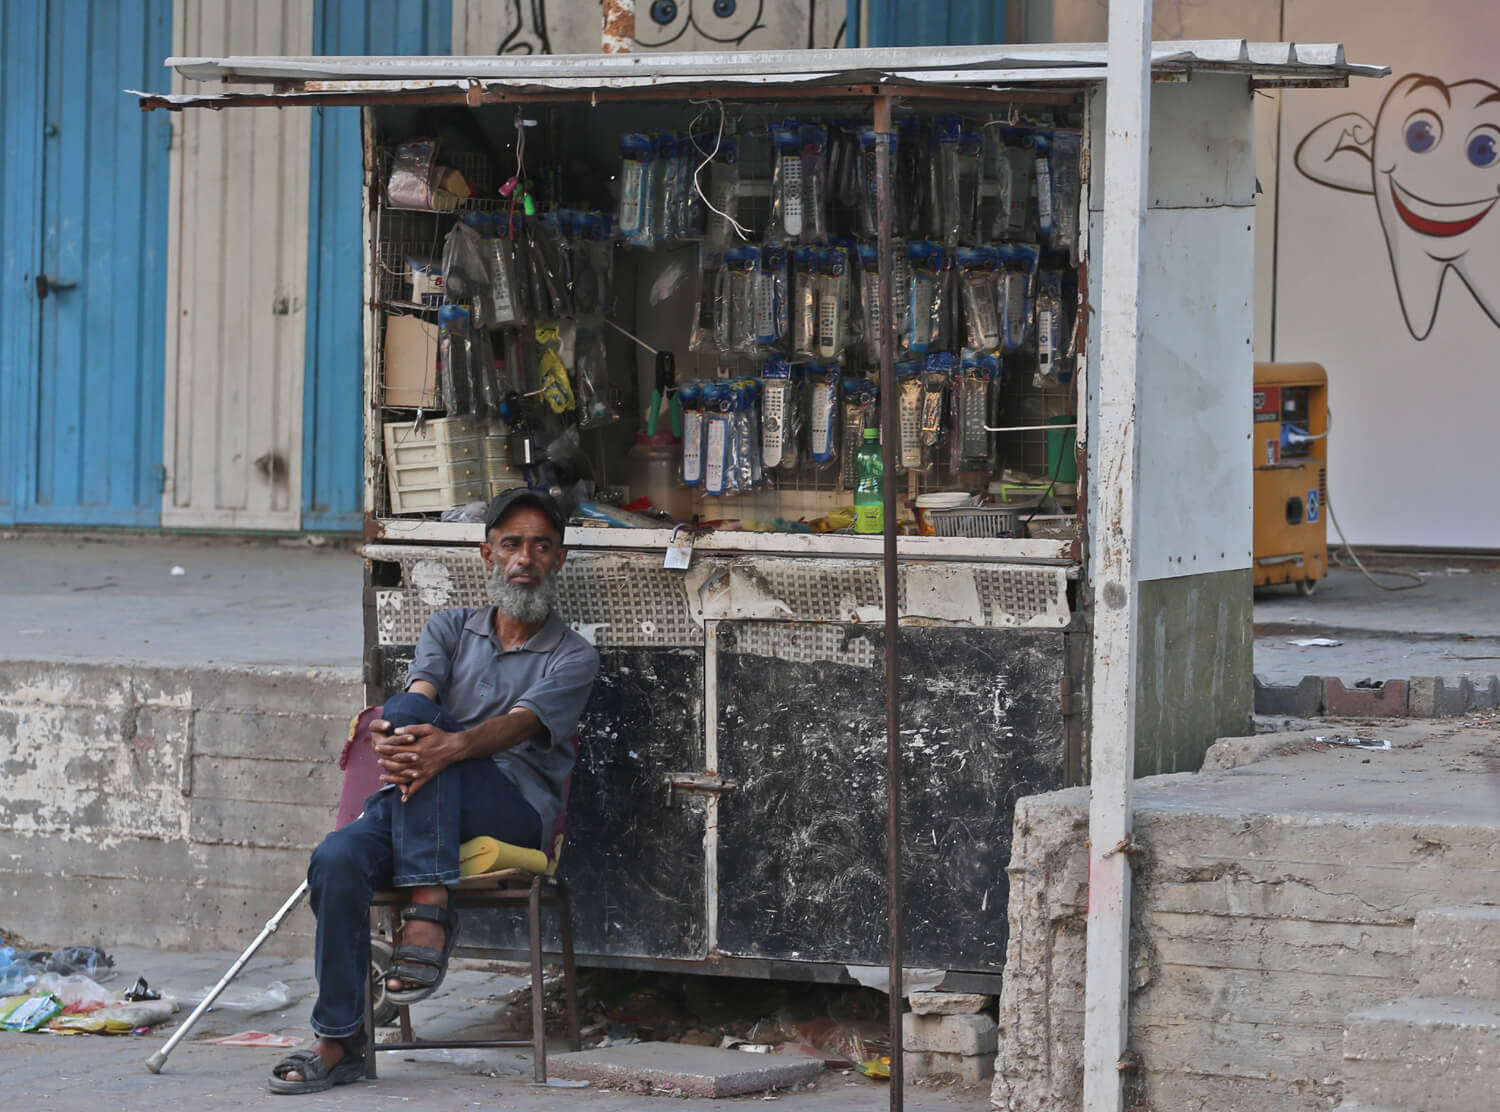 A Palestinian man sits next to his cart where he hangs household items for sell in al-Nuseriat refugee camp in the Gaza Strip (Photo: Mohammed Assad) Mondowiess)